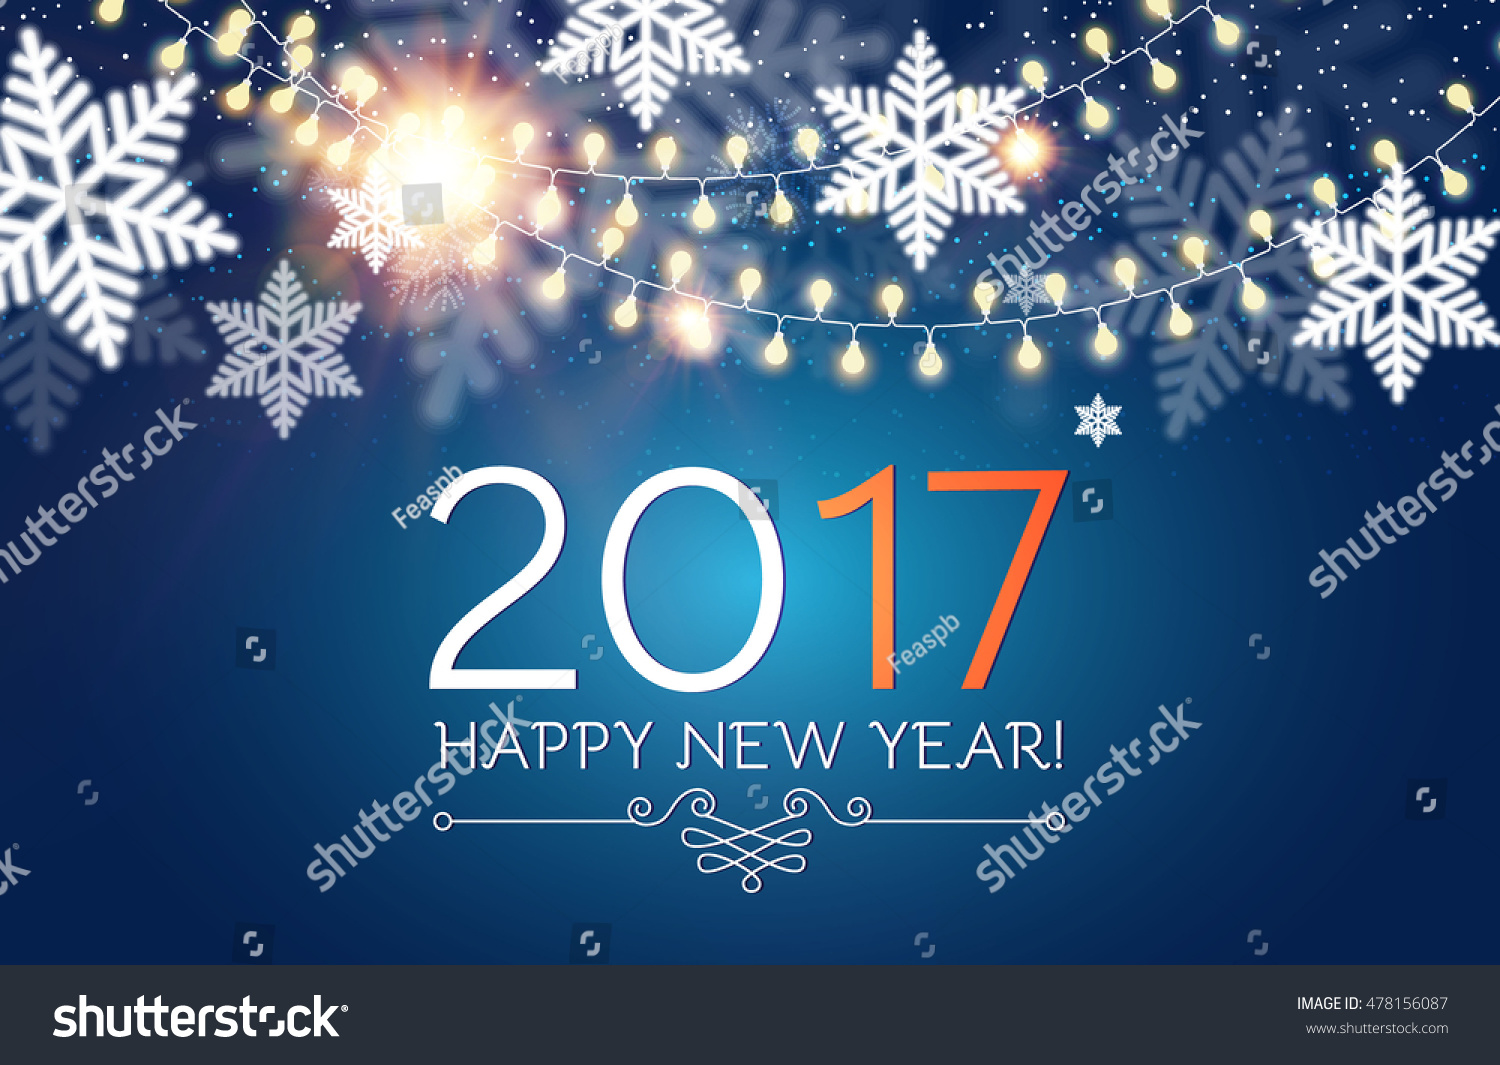 Happy new 2017 year seasons greetings stock vector 478156087 happy new 2017 year seasons greetings snowflakes ans light garlands colorful winter background kristyandbryce Choice Image